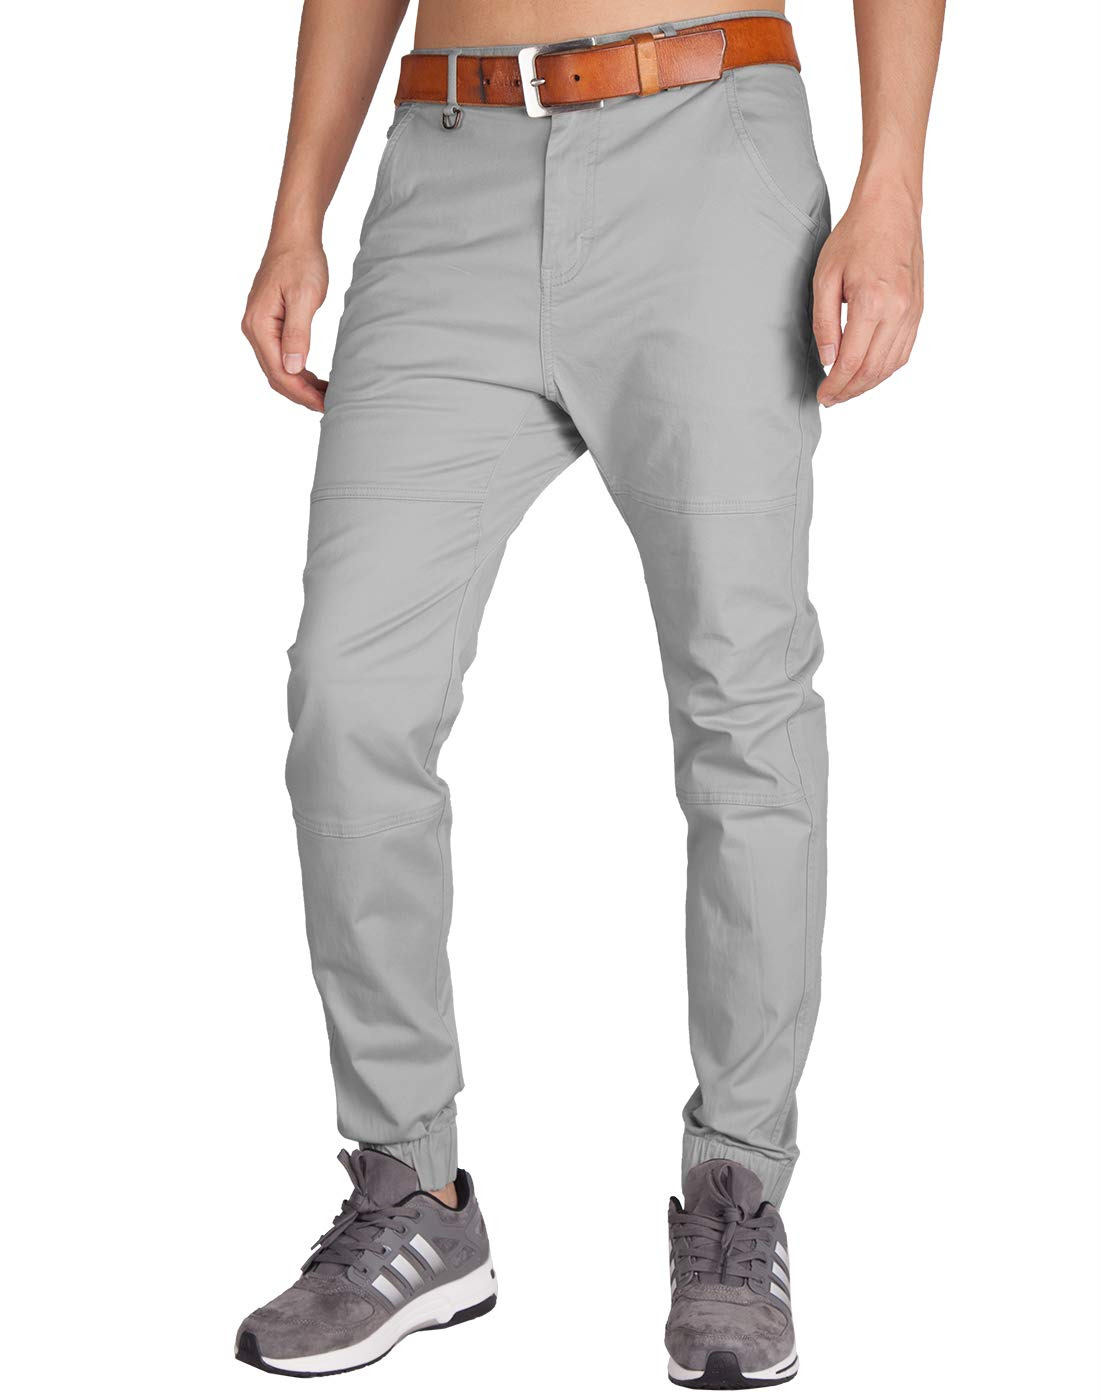 ITALY MORN Men's Chino Jogger Pants Slim Fit Elastic Cuff